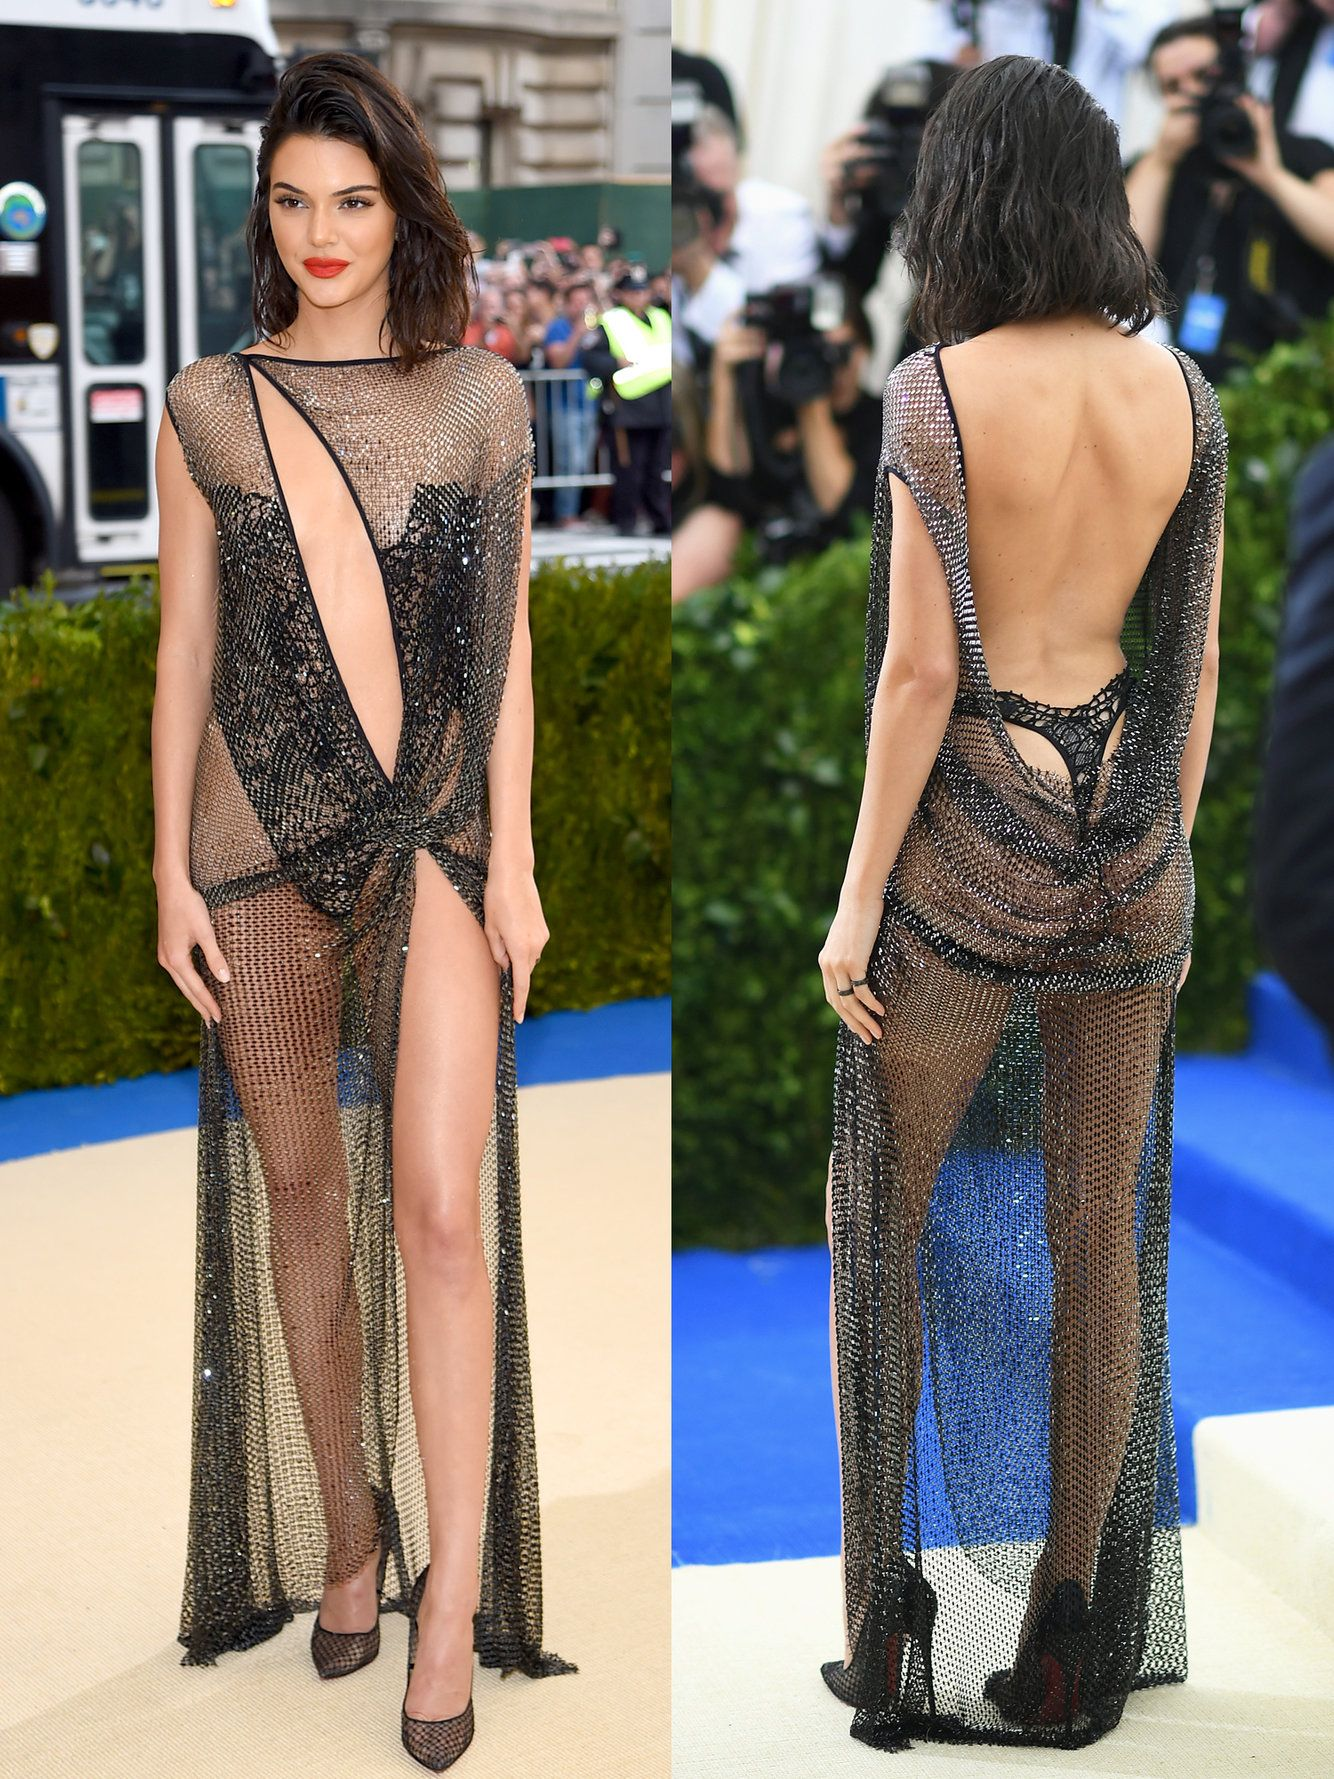 Celebrites Kendall Jenner nude (55 foto and video), Tits, Cleavage, Boobs, underwear 2017